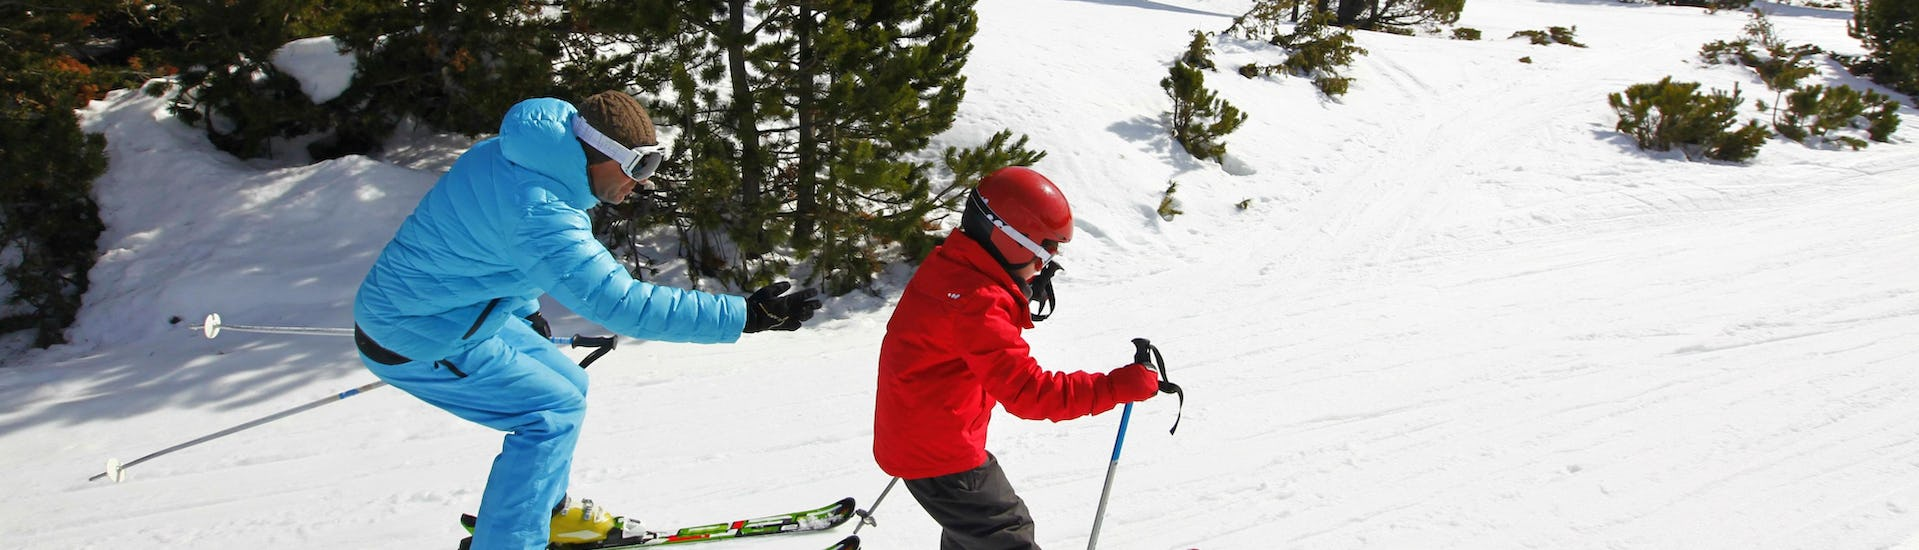 A young skier is following the instructions of his ski instructor from the ski school ESI Font Romeu on one of the snowy tracks of the Font Romeu ski resort in the Pyrenees.